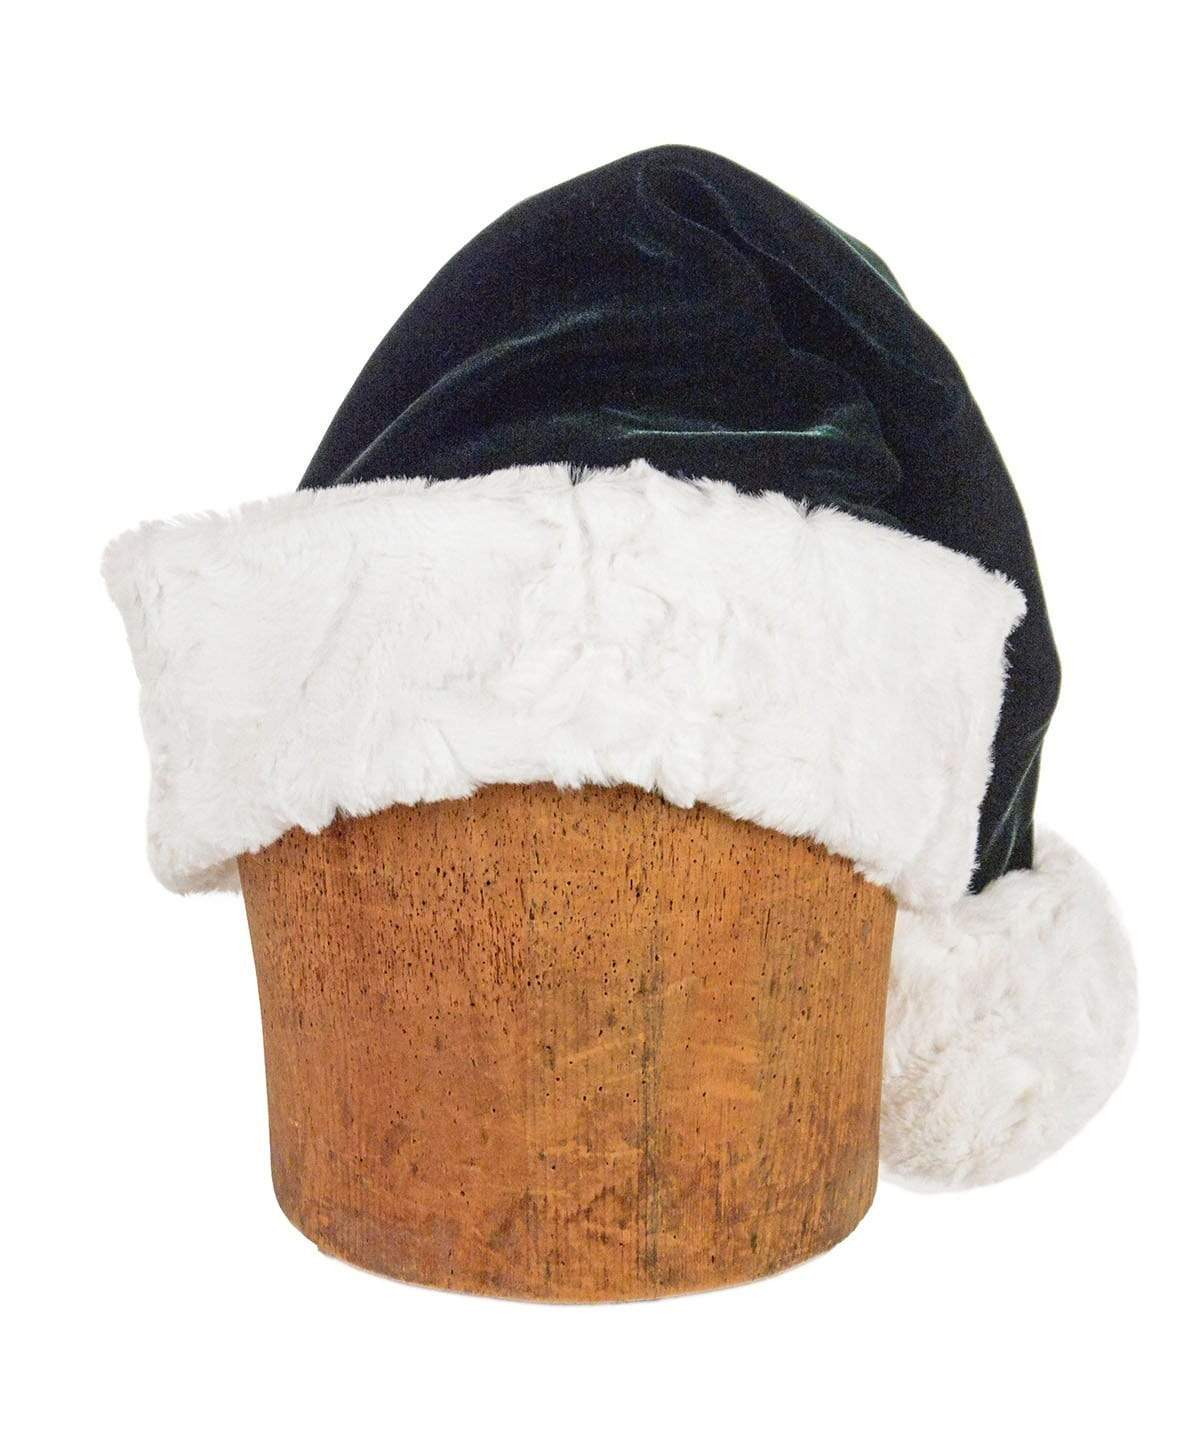 Santa Hat Style - Forest Green Velvet with Cuddly Faux Fur in Ivory